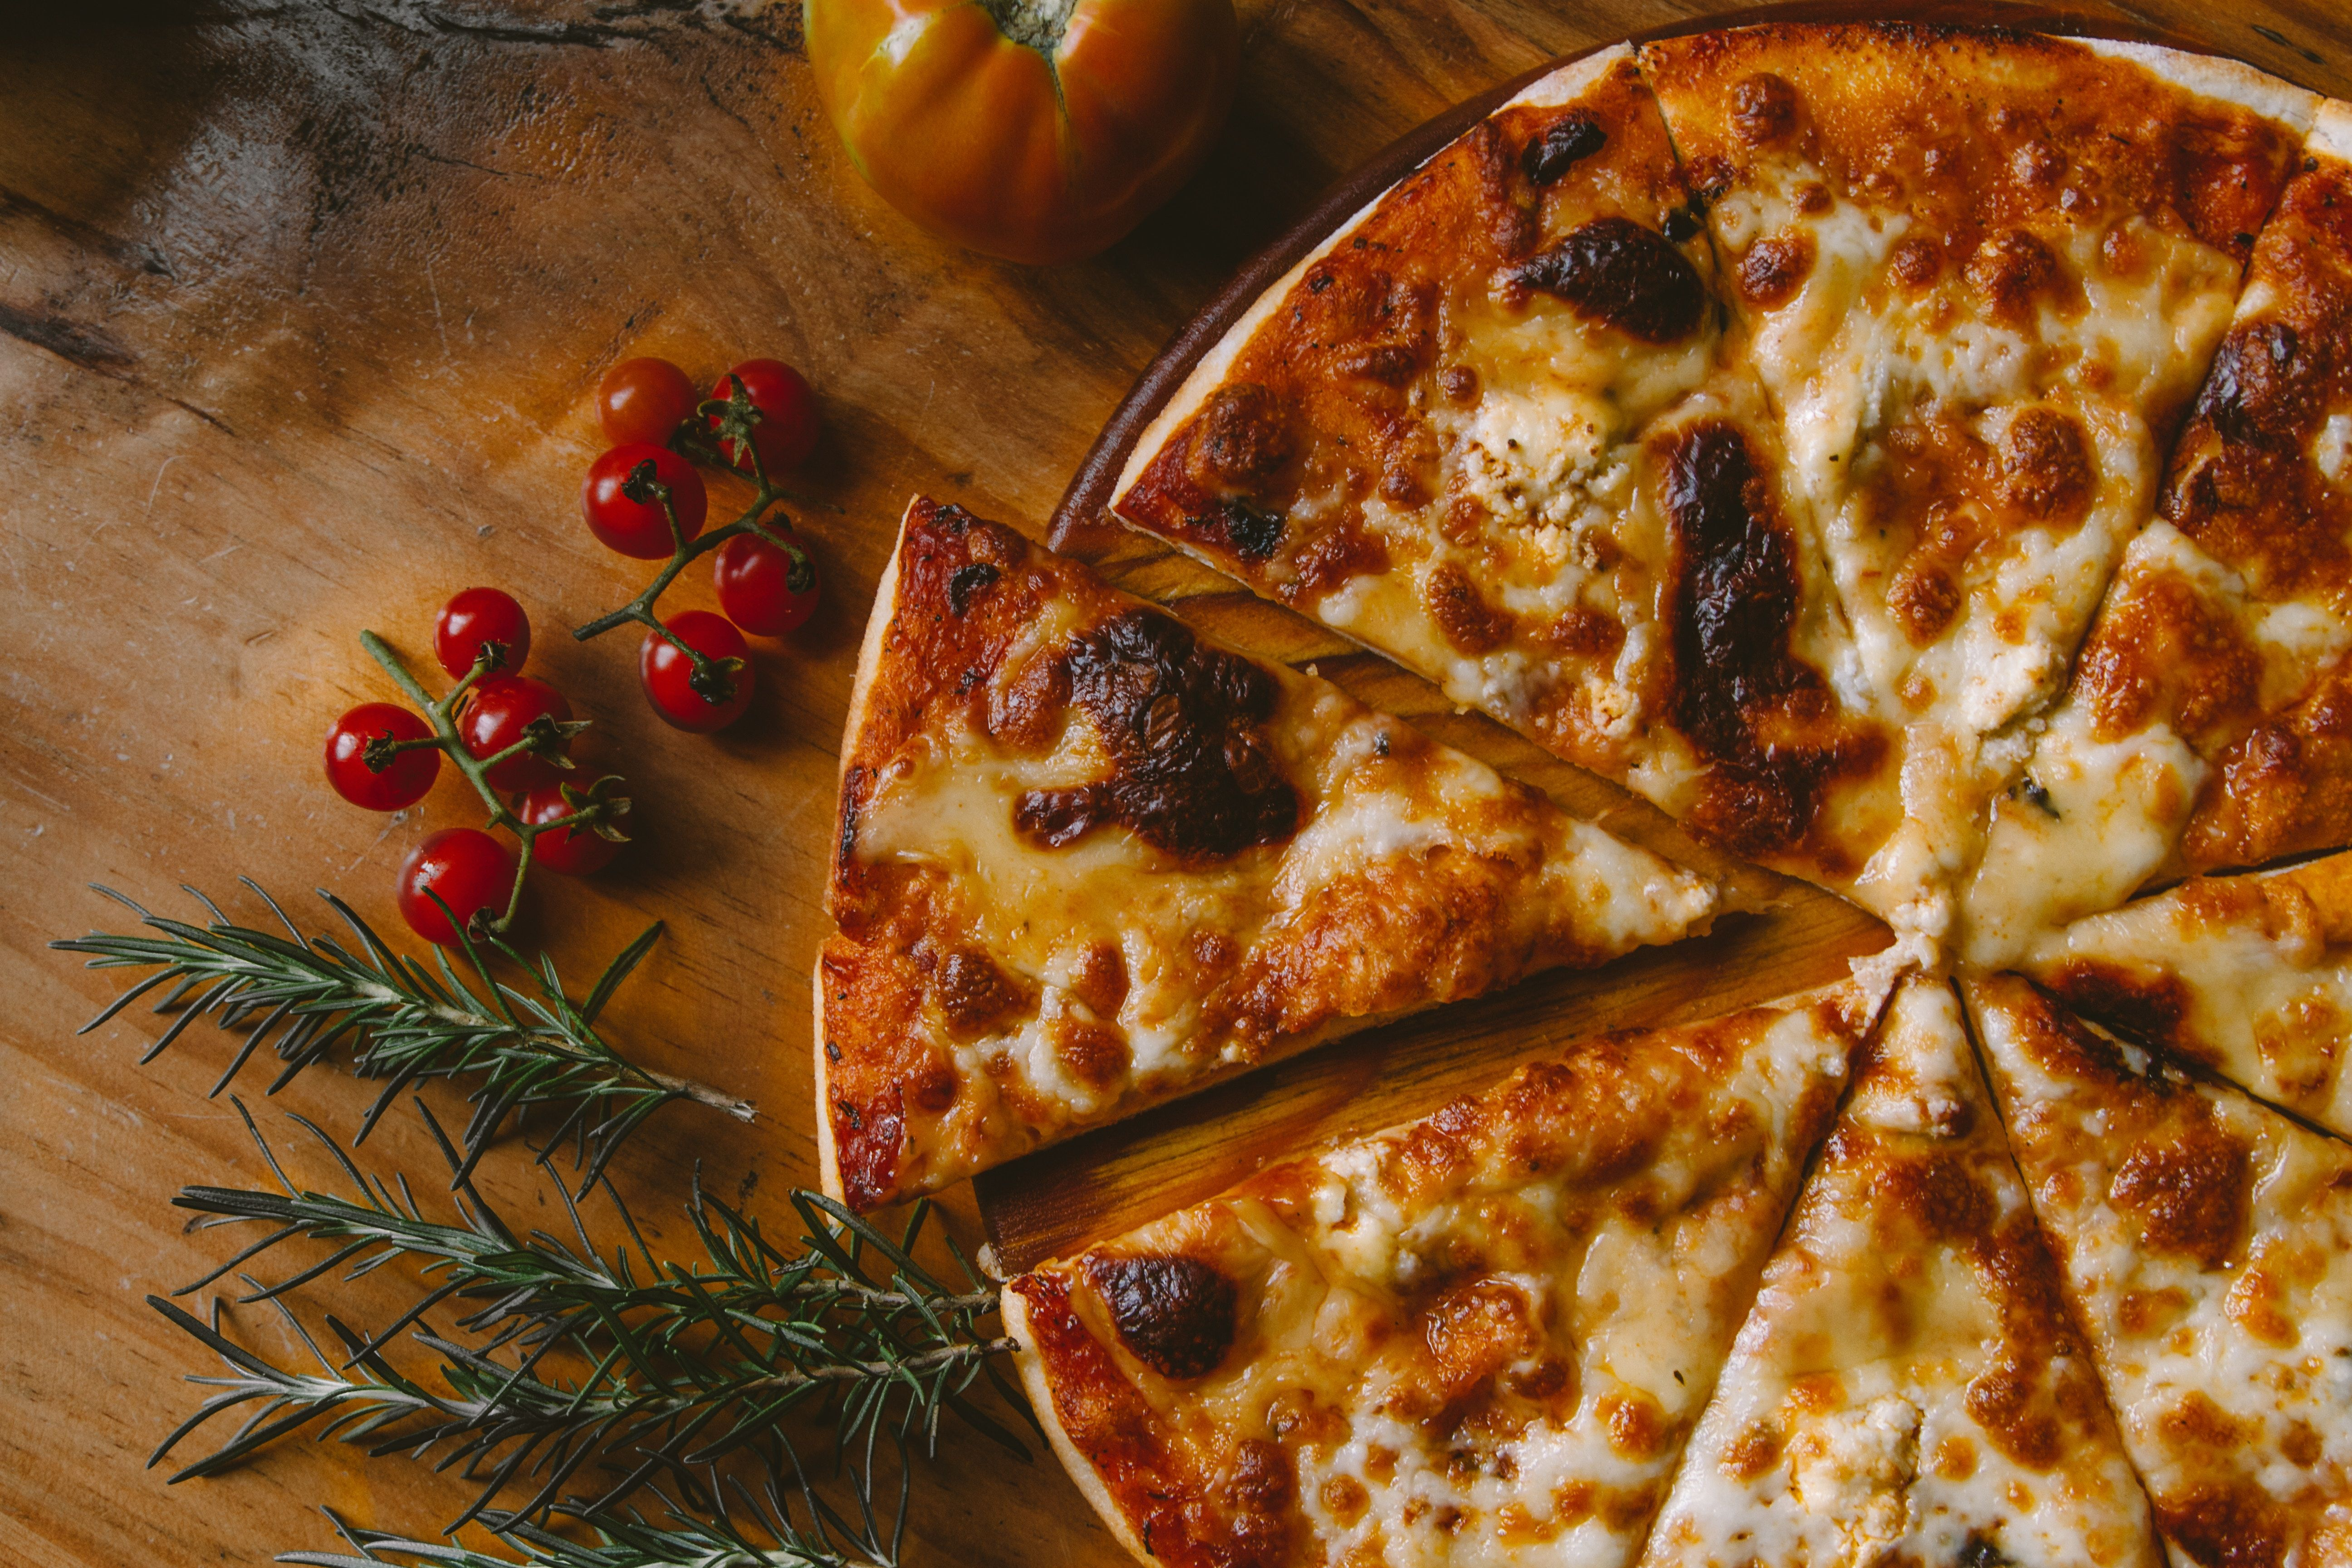 pizza surrounded by tomatoes